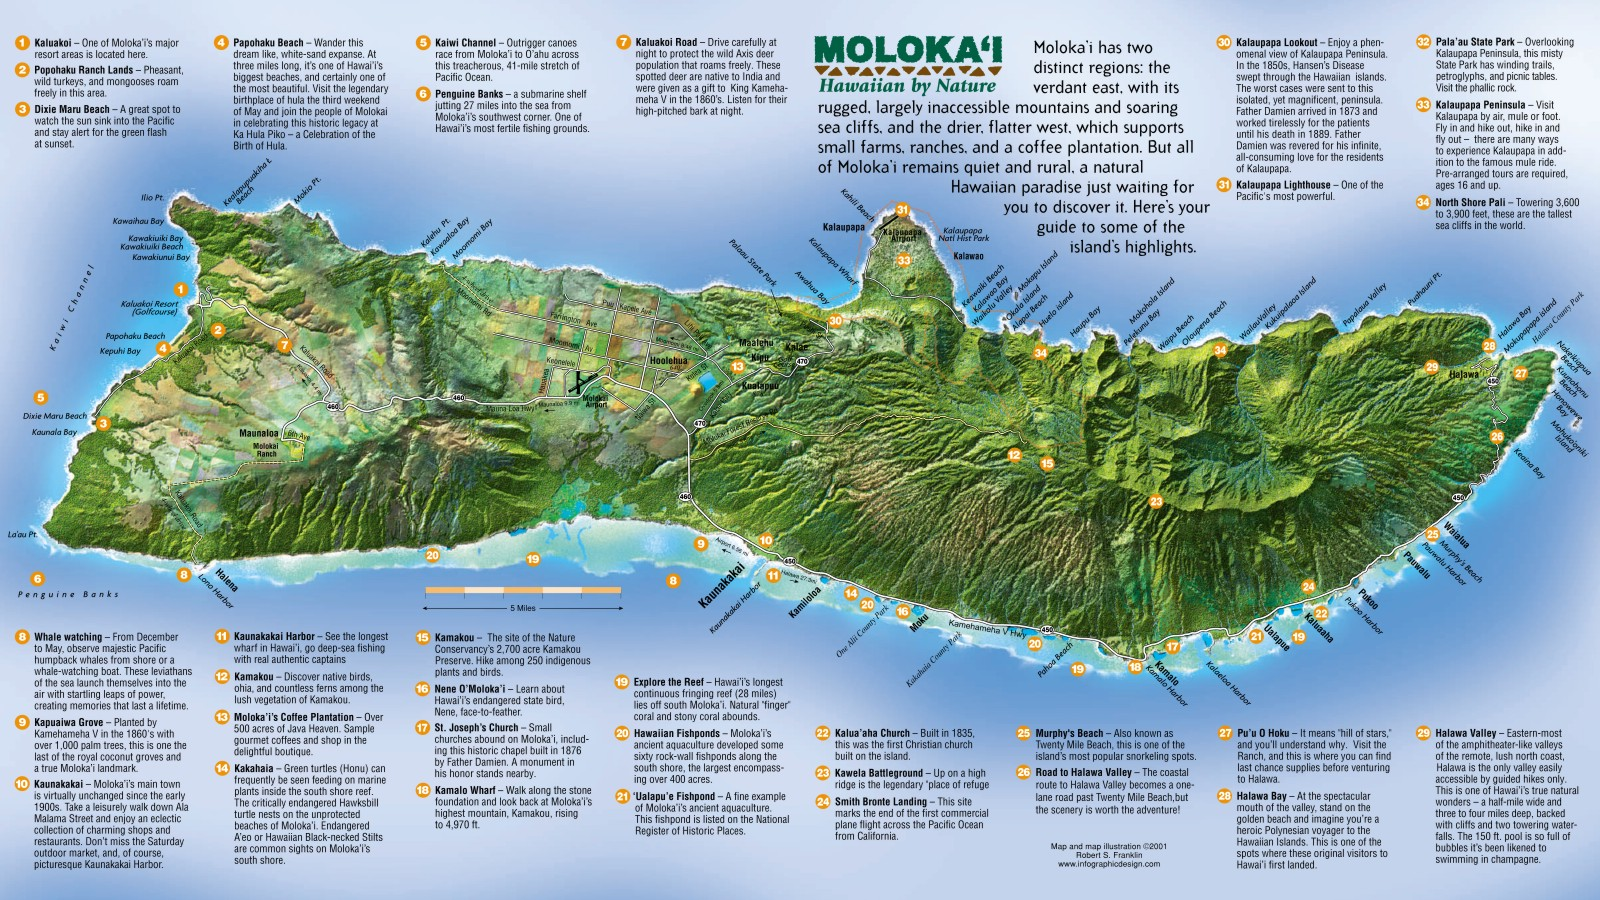 kauai map with Molokai Tourist Map on Midway in addition Oahu in addition Molokai Tourist Map additionally The Queens Bath Princeville Hawaii likewise Trip Report Midway Atoll.